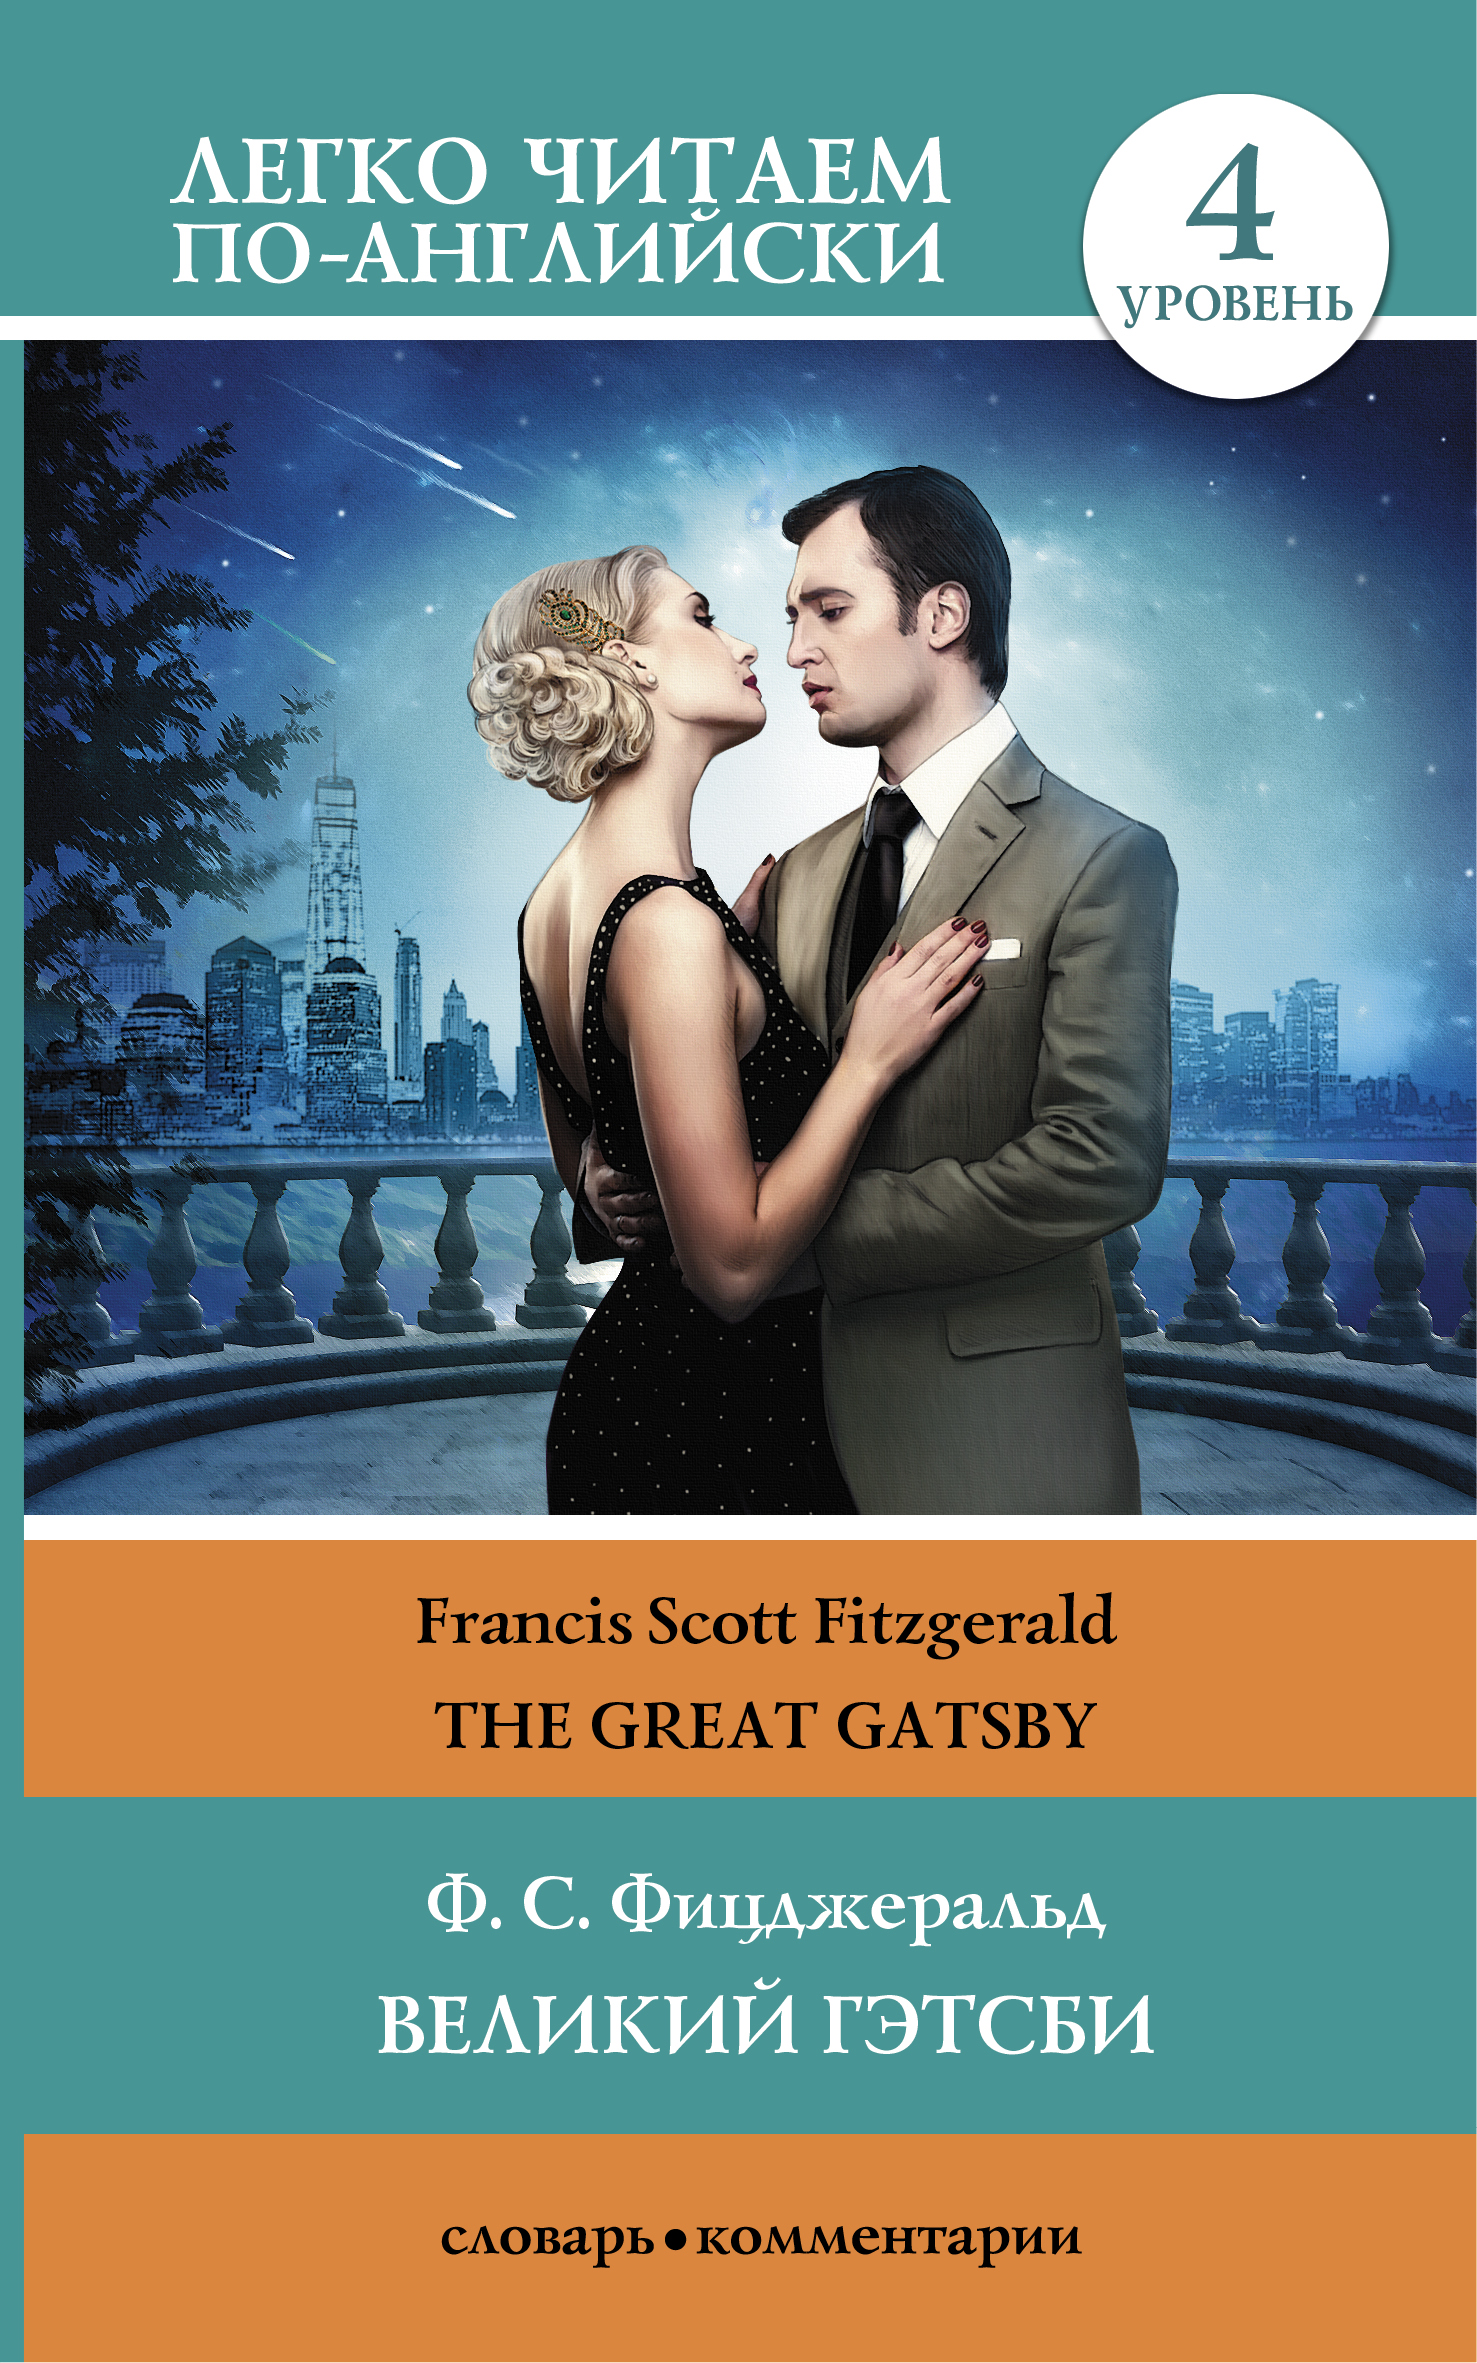 The Great Gatsby / Великий Гэтсби. Уровень 4